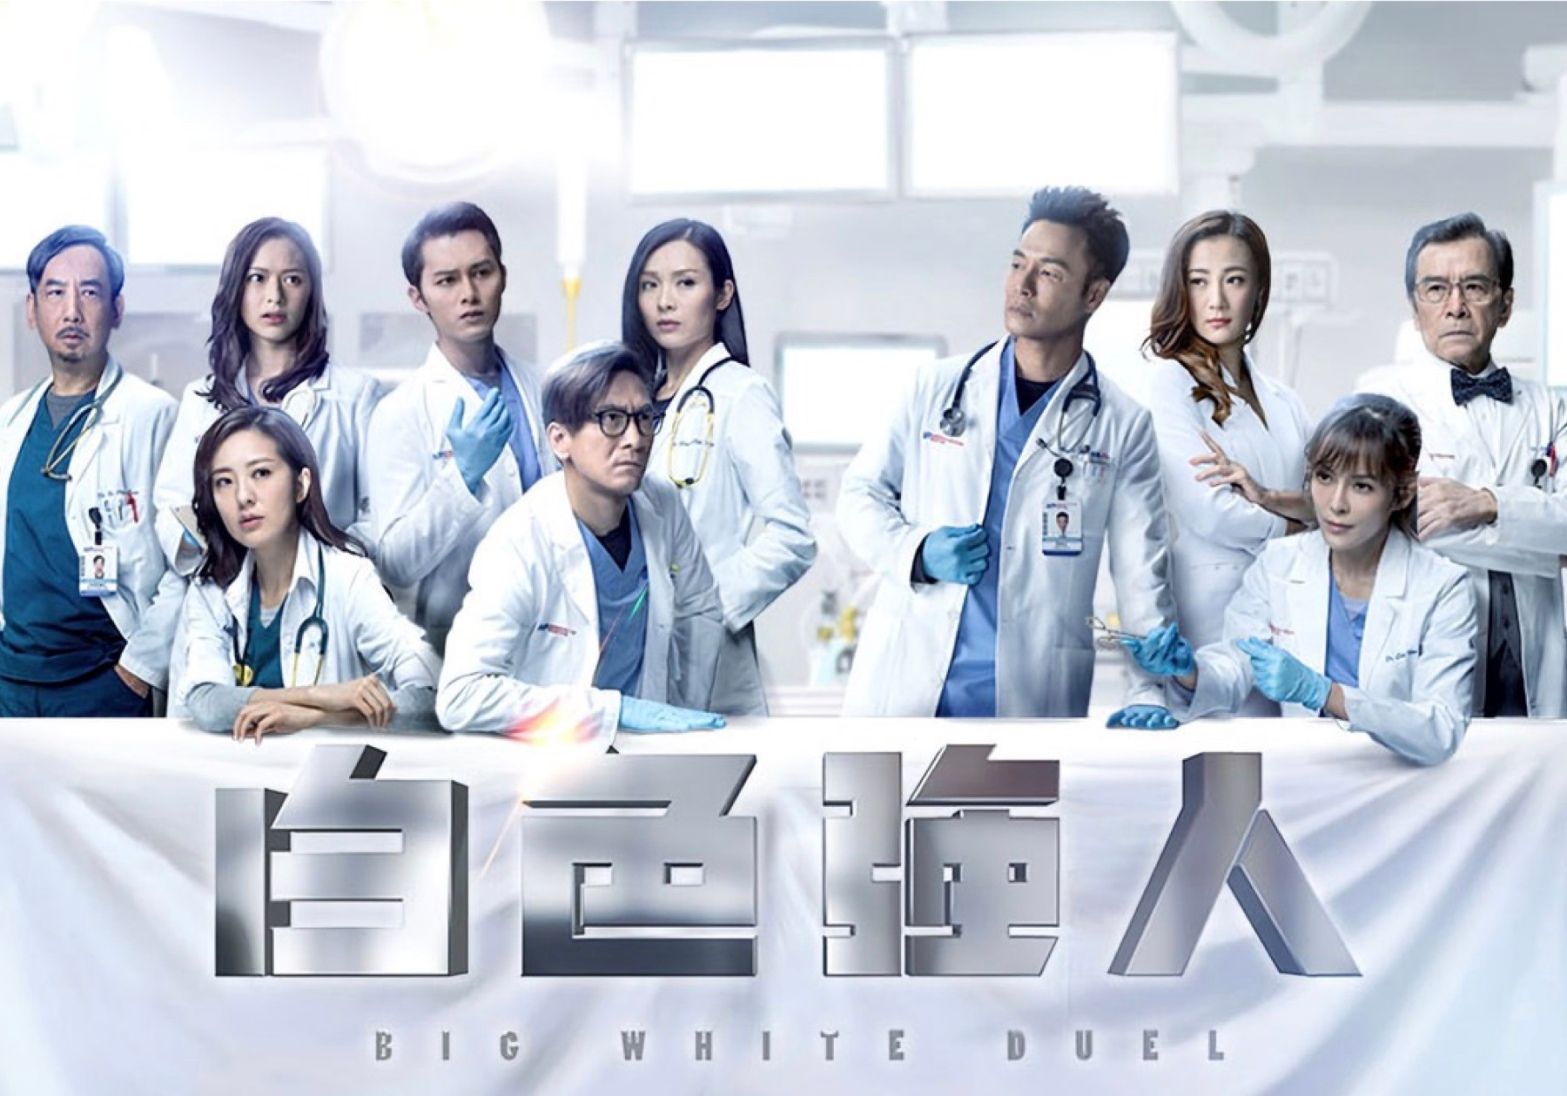 Big White Duel, 2019 TVB medical drama.